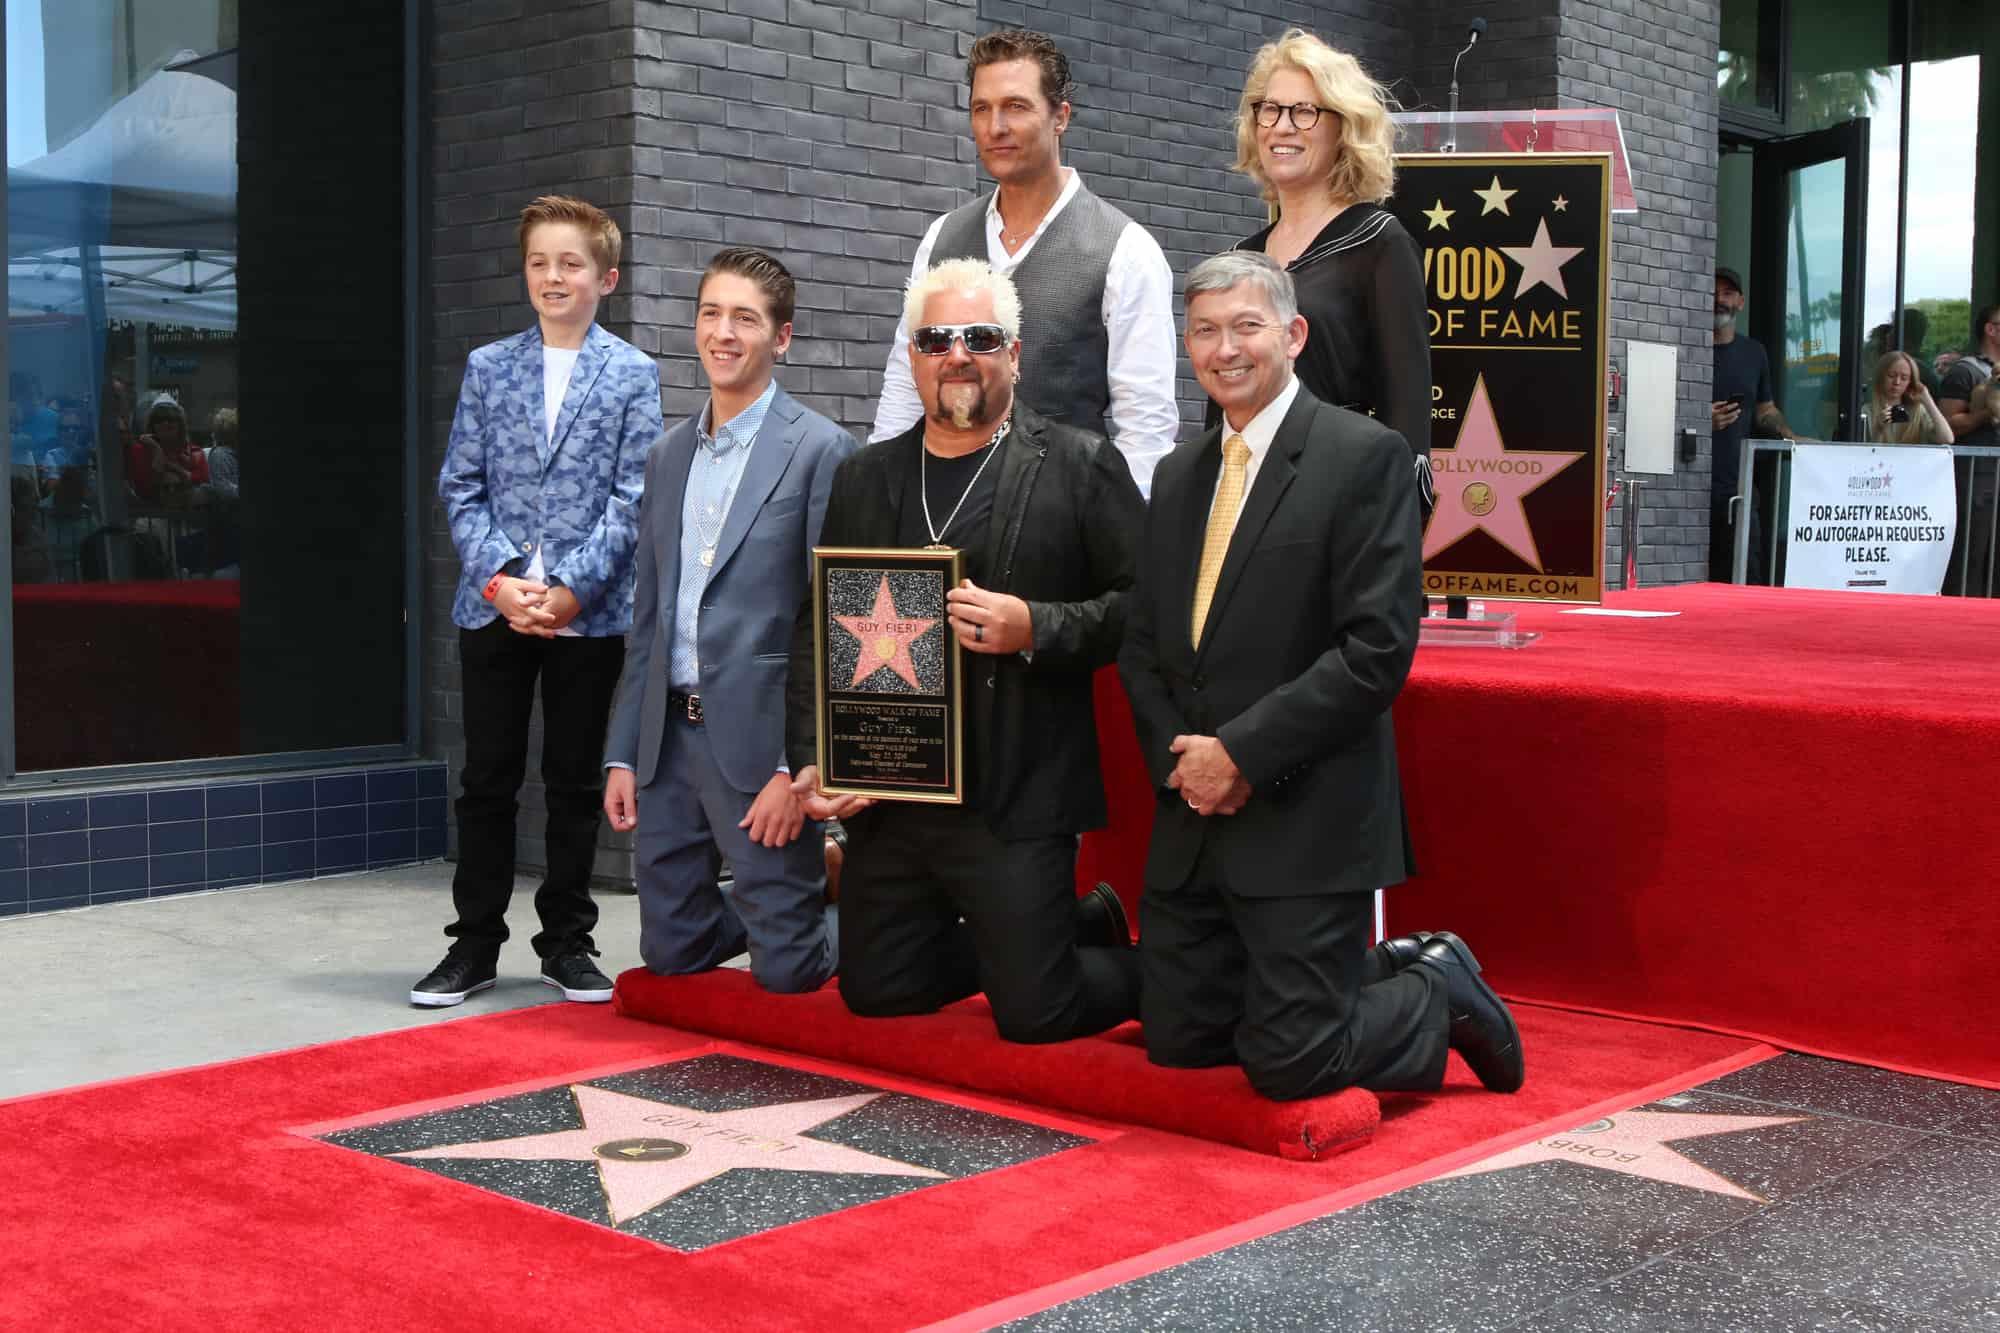 Guy Fieri and family gather around for the ceremony of Guy Fieri's Hollywood star